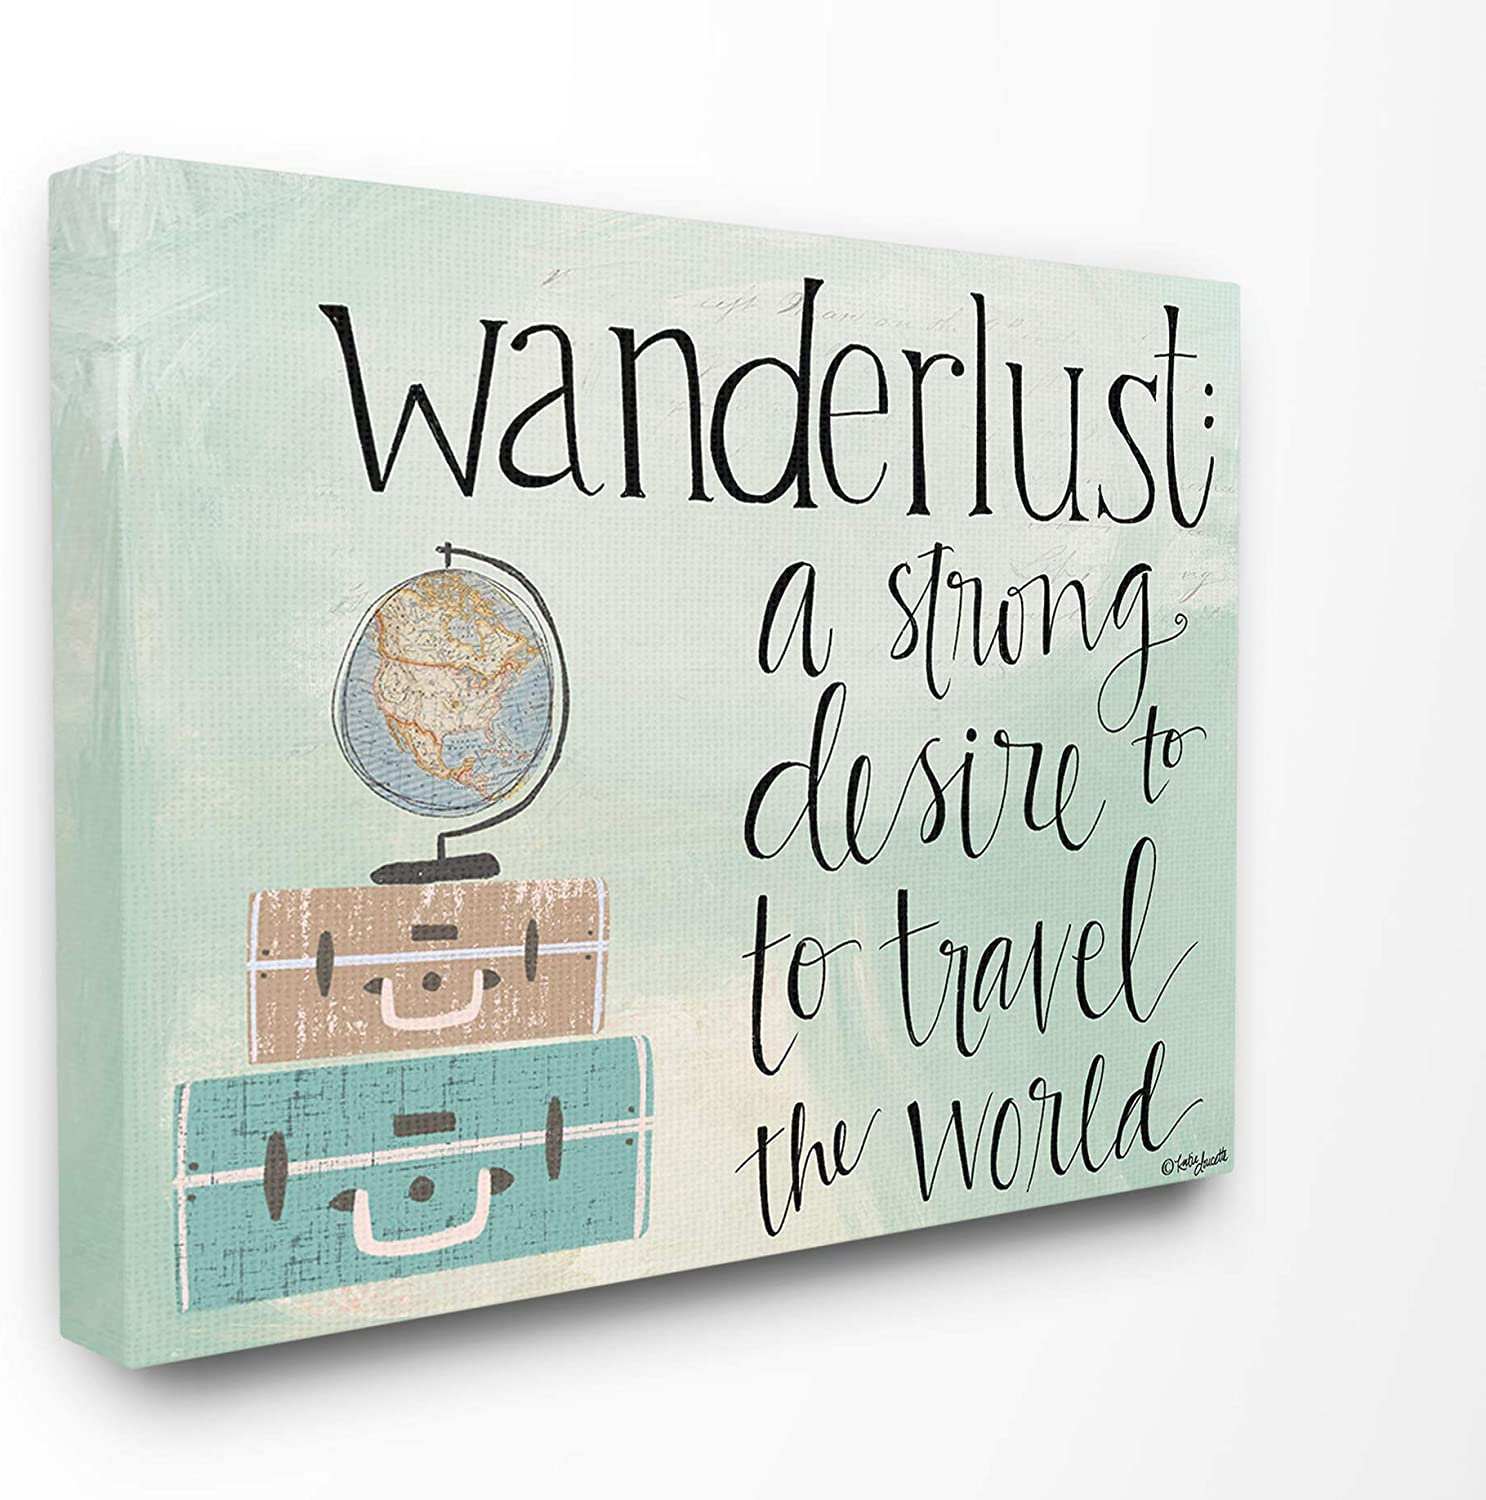 The Stupell Home Decor Aqua bluee Wanderlust Definition Suitcases and Globe Drawing Stretched Canvas Wall Art 11x14 Multi-color